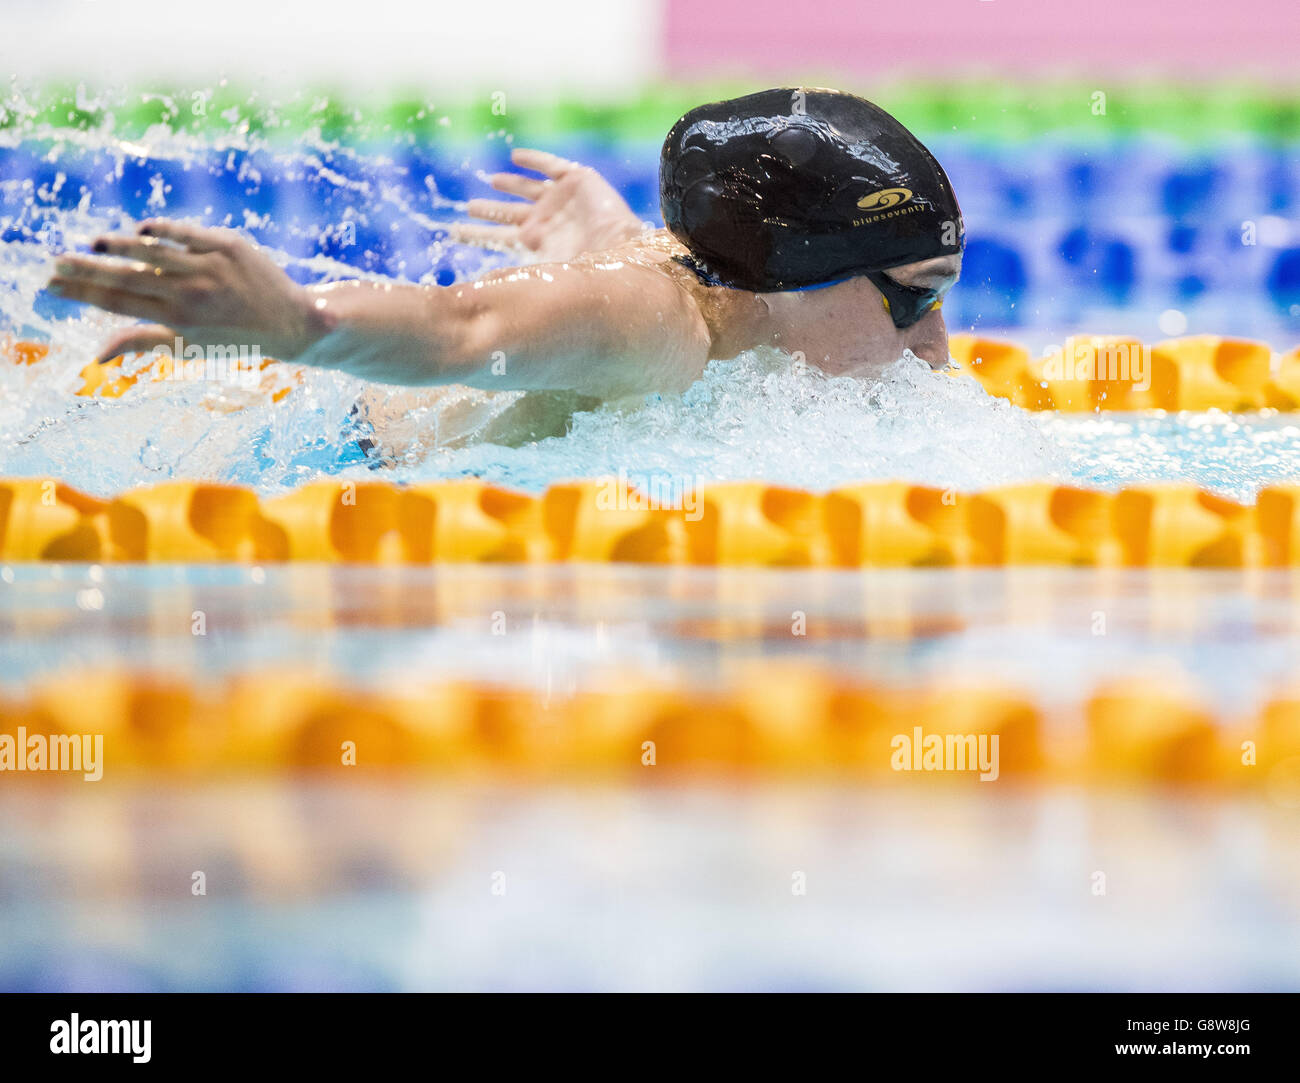 Championnats de natation britannique - Jour 3 - Centre International de Natation Tollcross Photo Stock